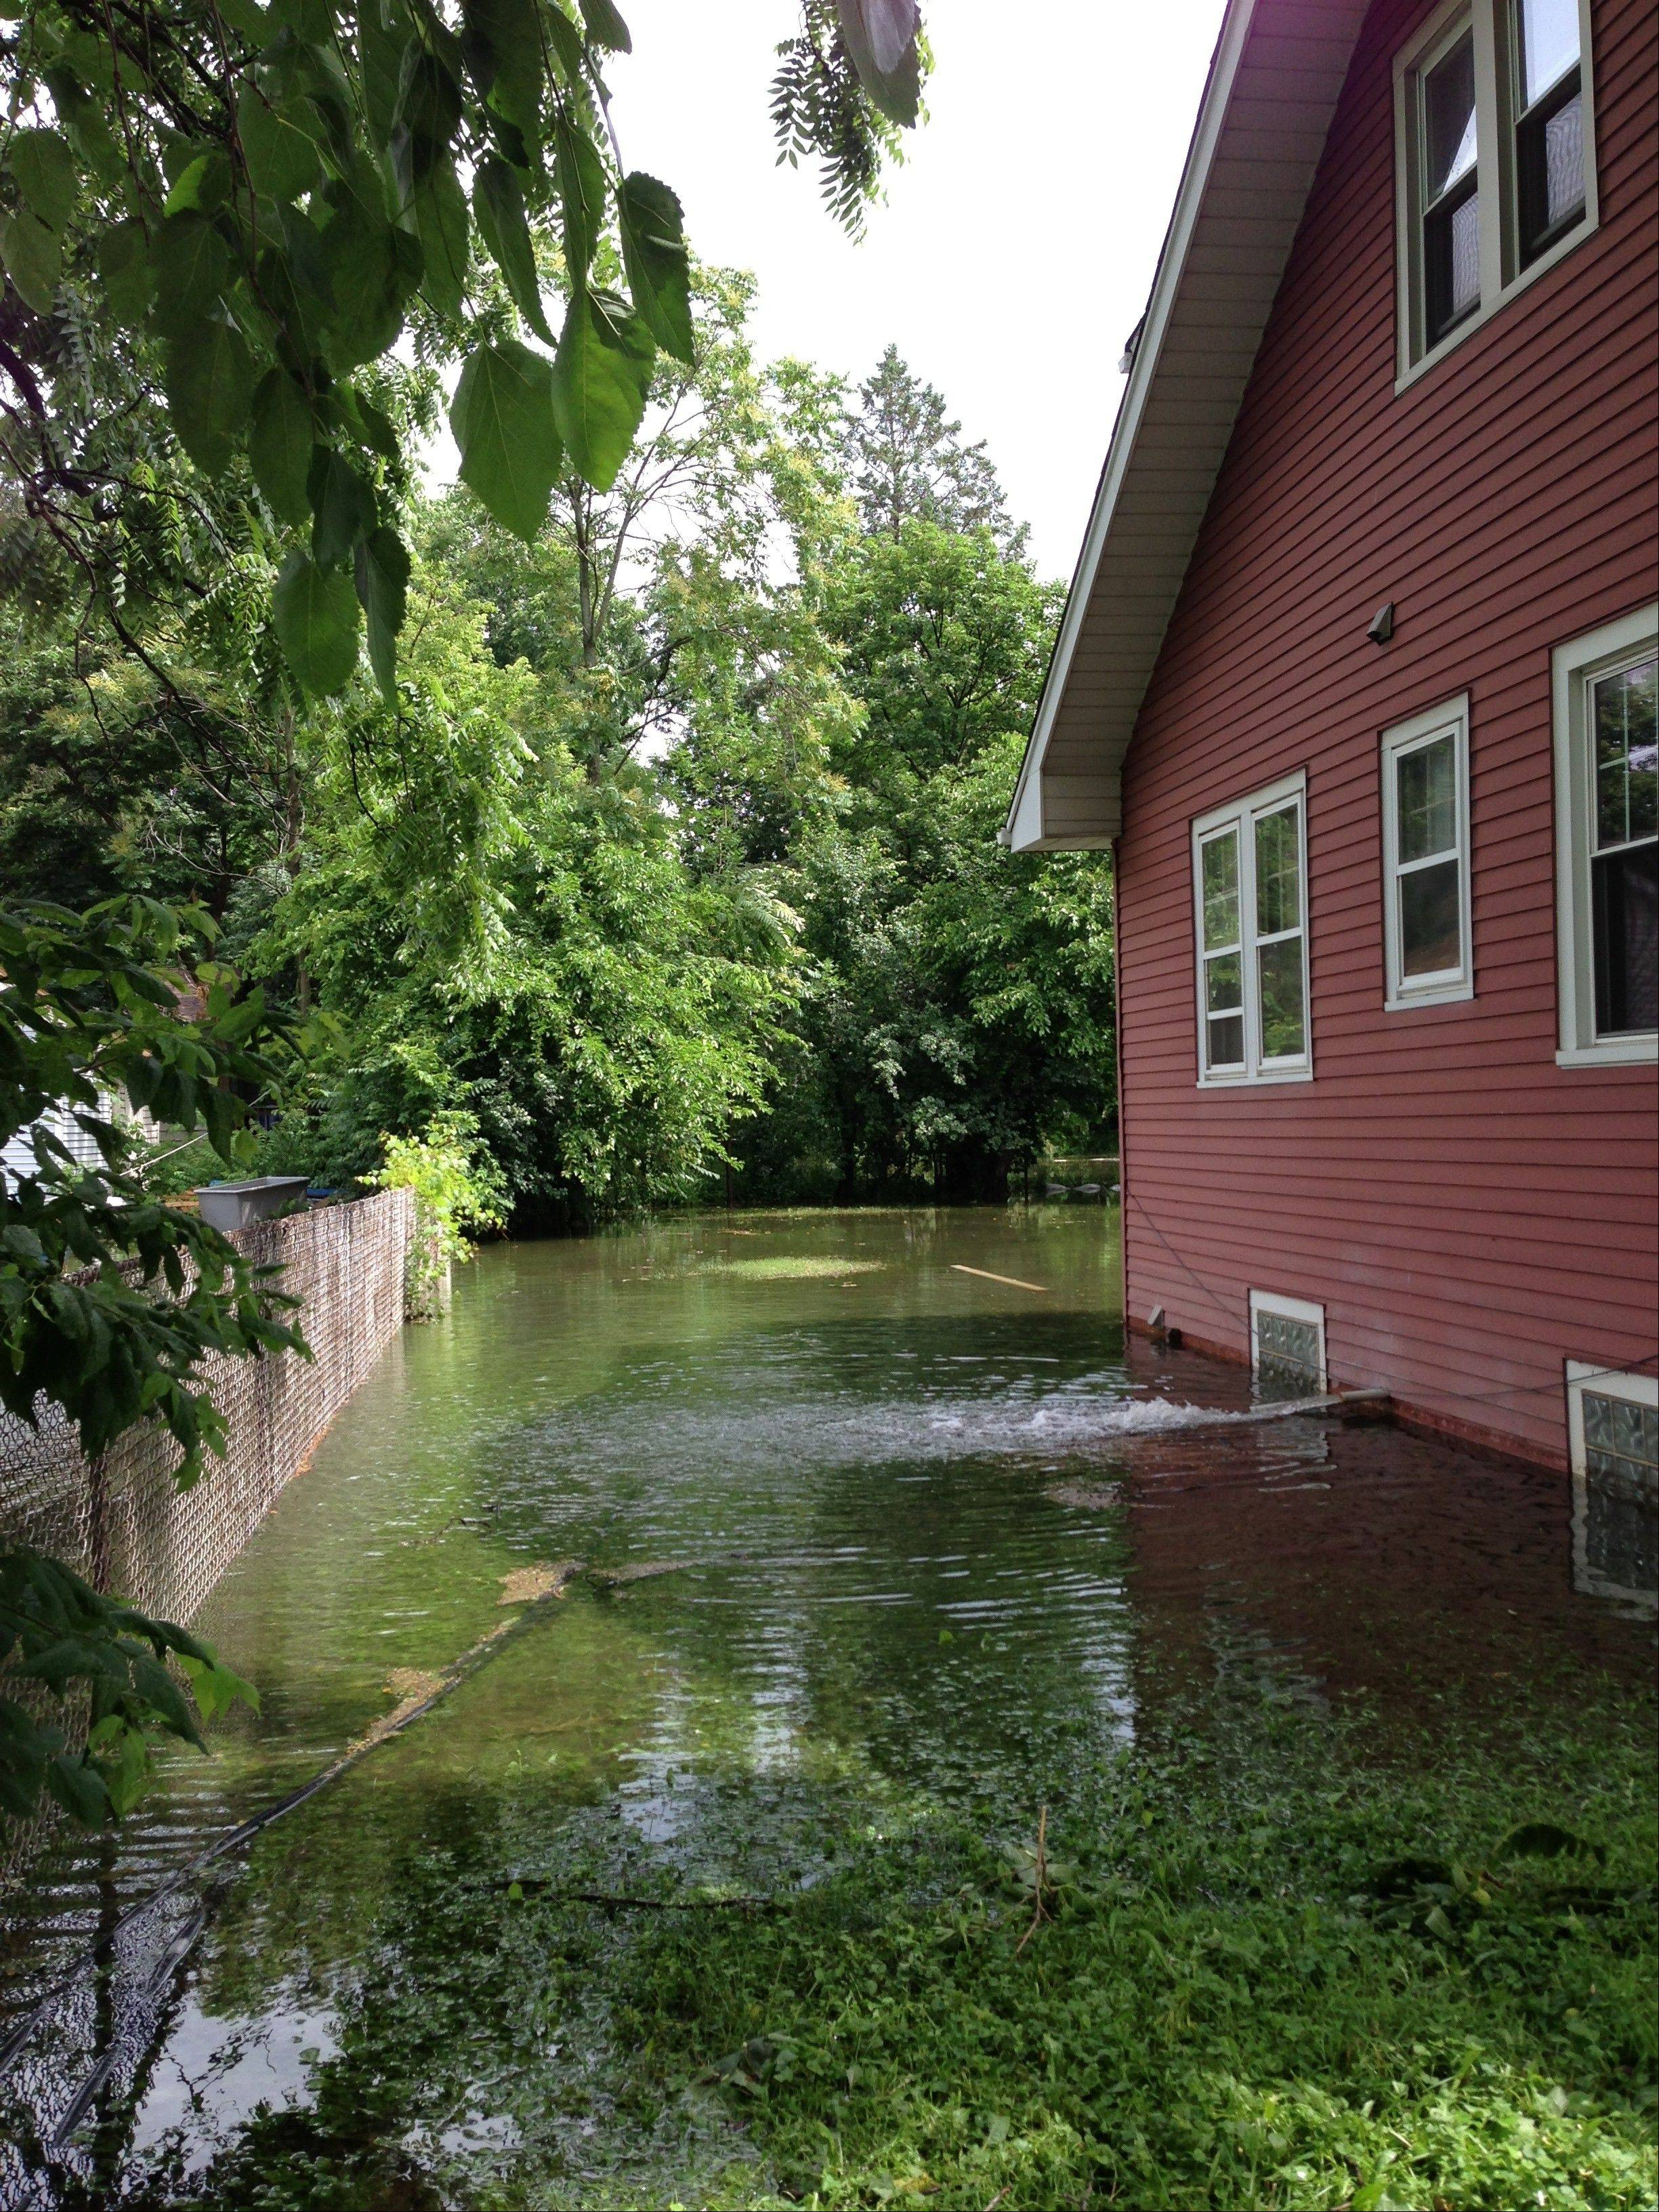 There was backyard flooding Wednesday morning at a home off Rand Road and Hawthorne Lane in Des Plaines near Big Bend Lake.